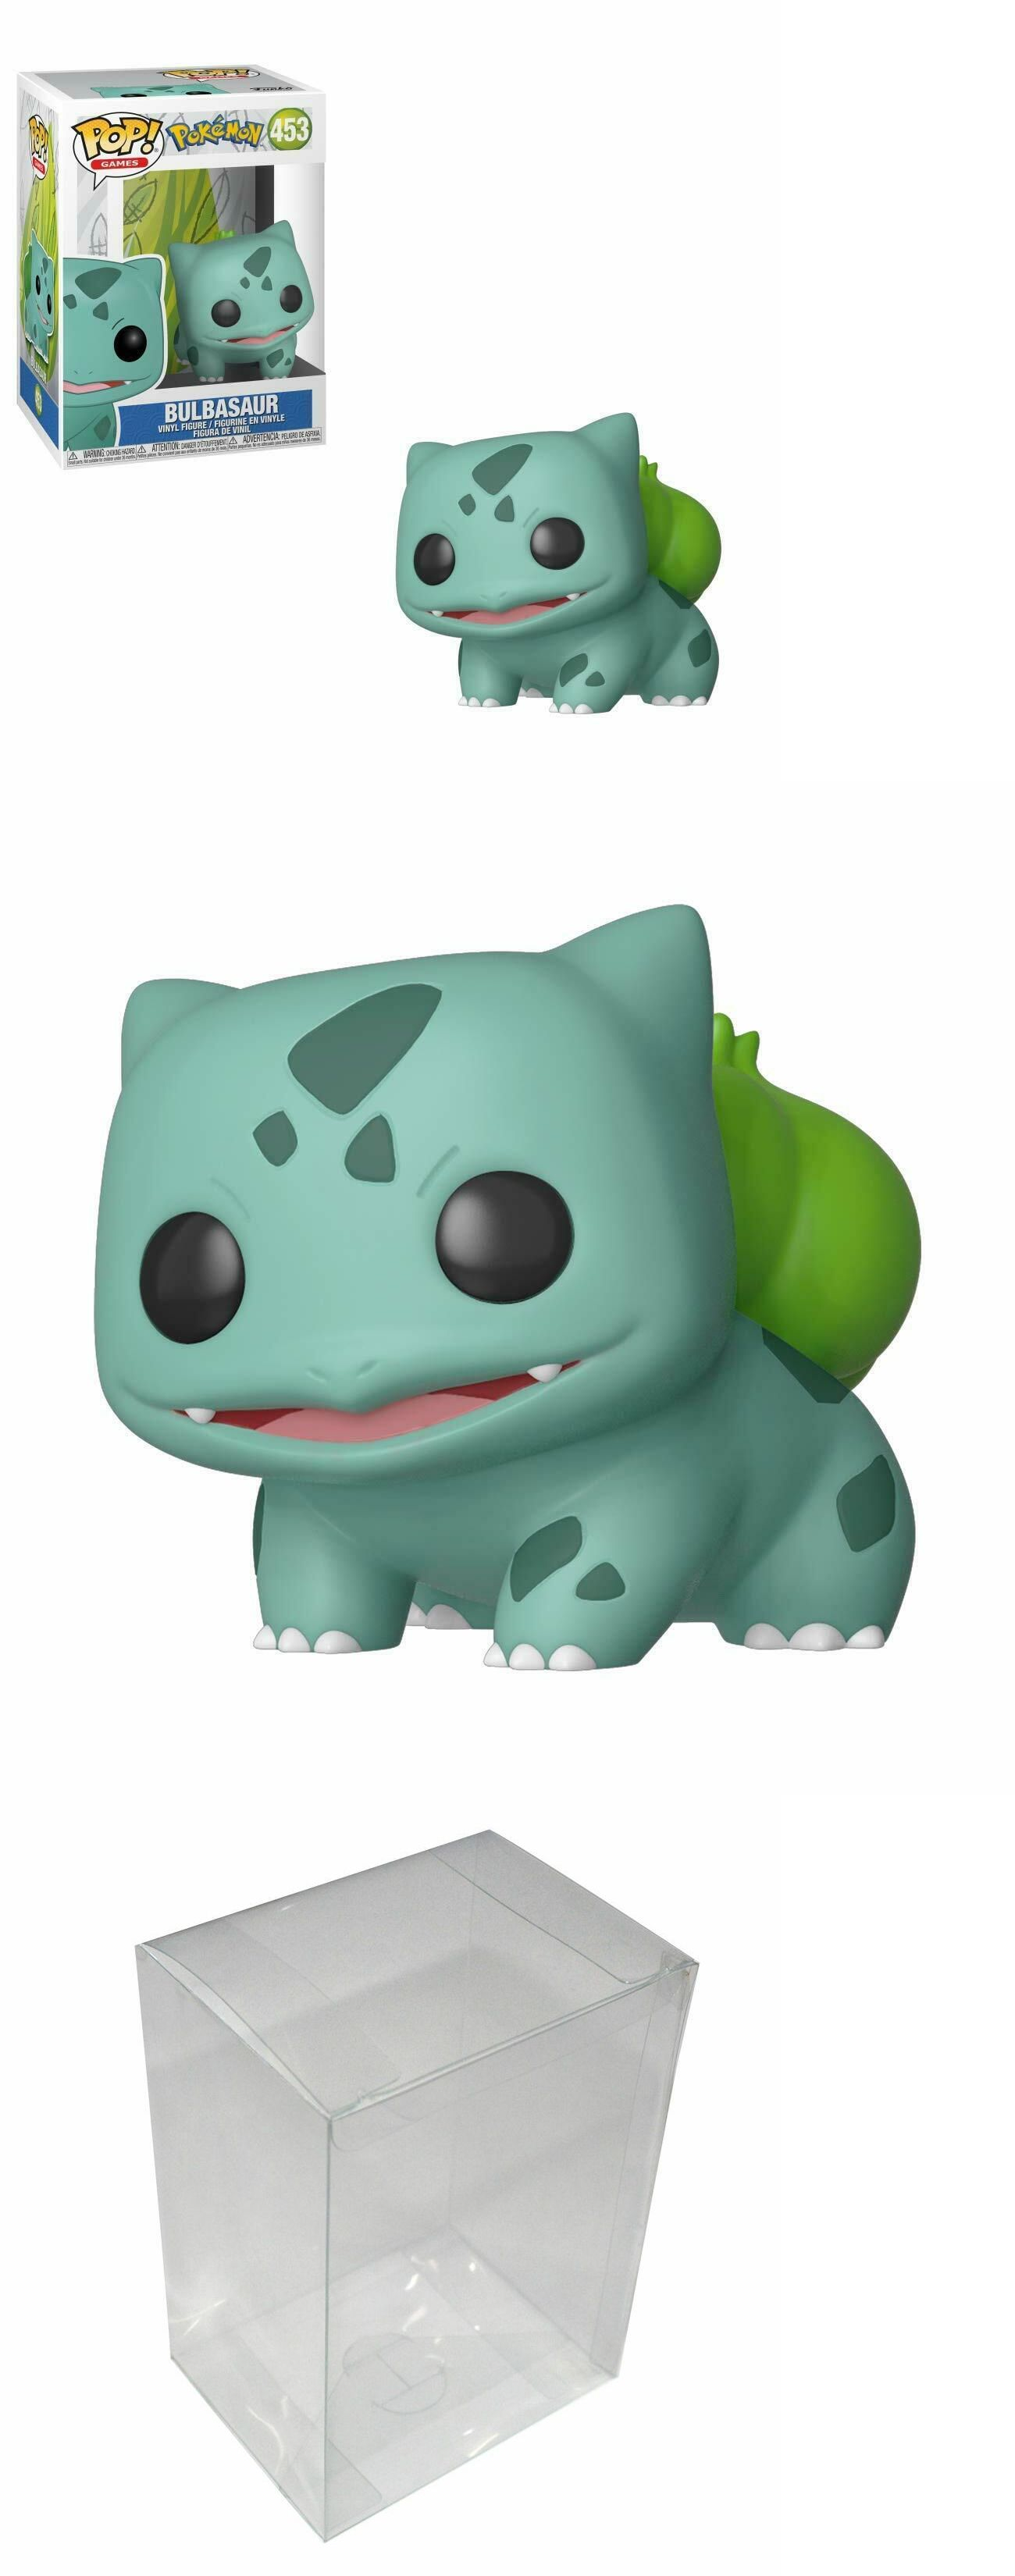 5cc3152a Other Action Figures 348: Bulbasaur - Funko Pop! Animation: Pokemon #453  With